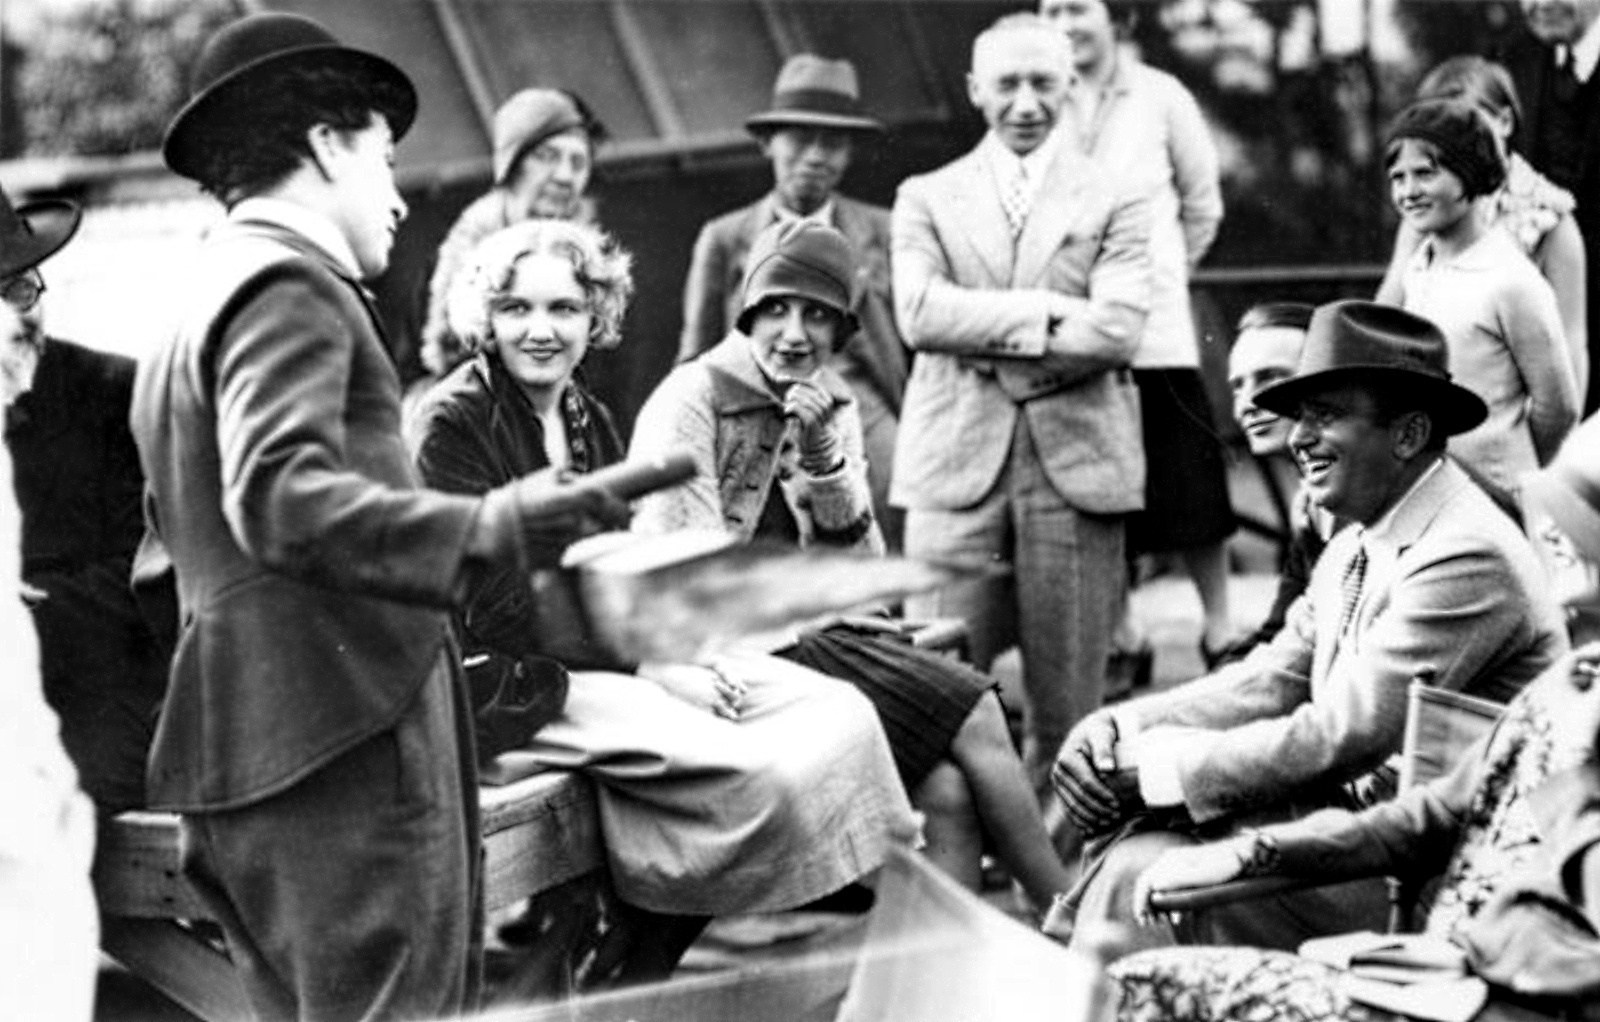 City Lights (1931) Behind the Scenes